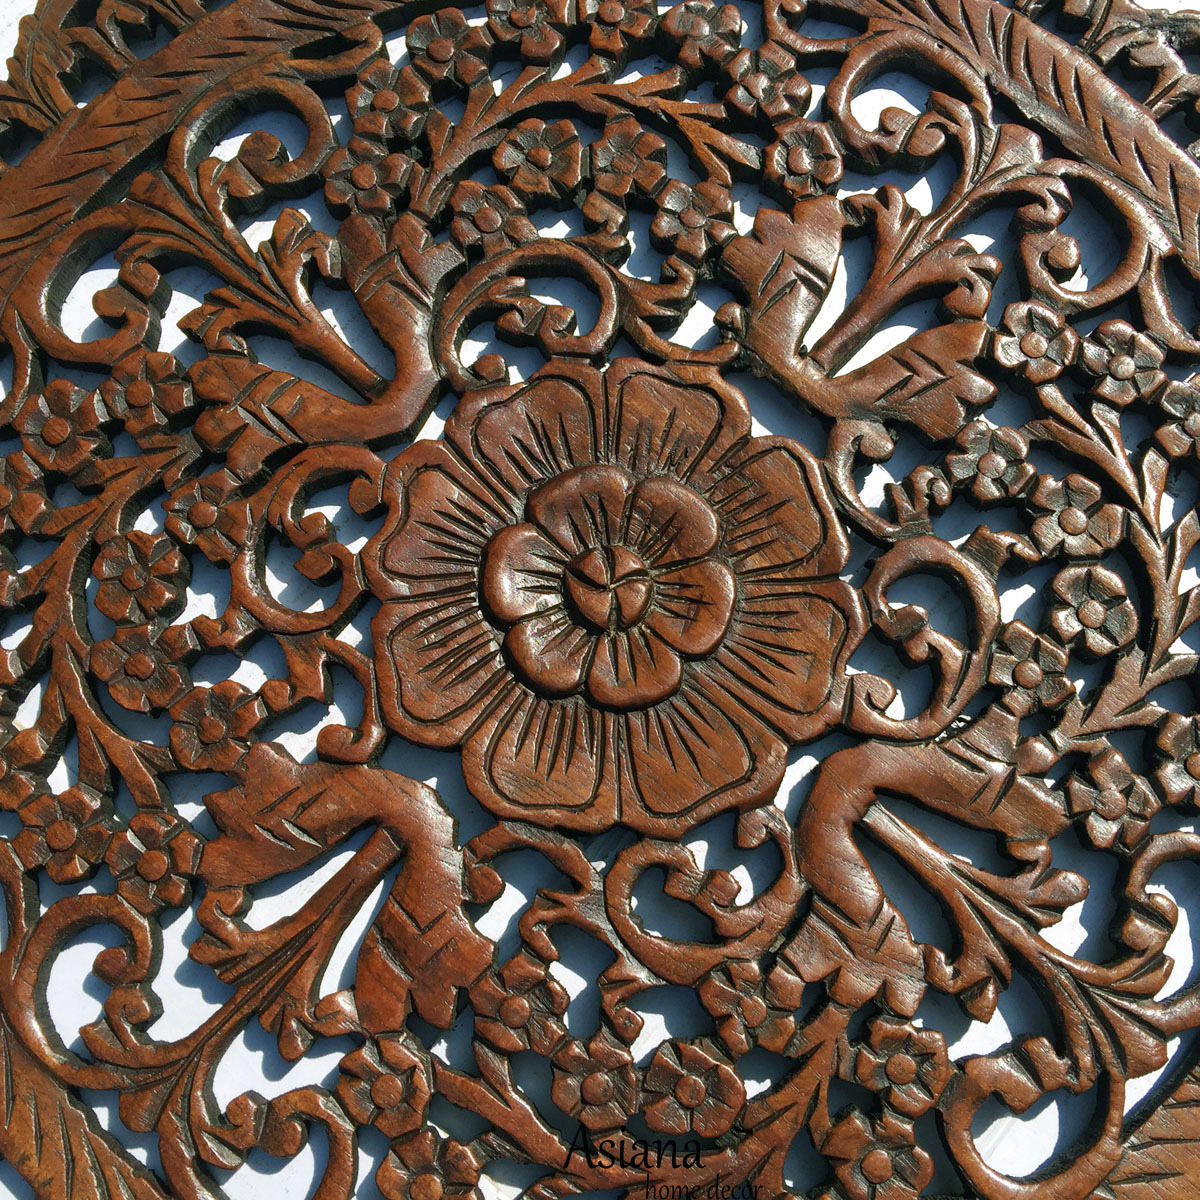 2 39 Round Wood Carved Floral Wall Art Asian Wood Wall Panels Floral Wall Hanging Wall Sculptures